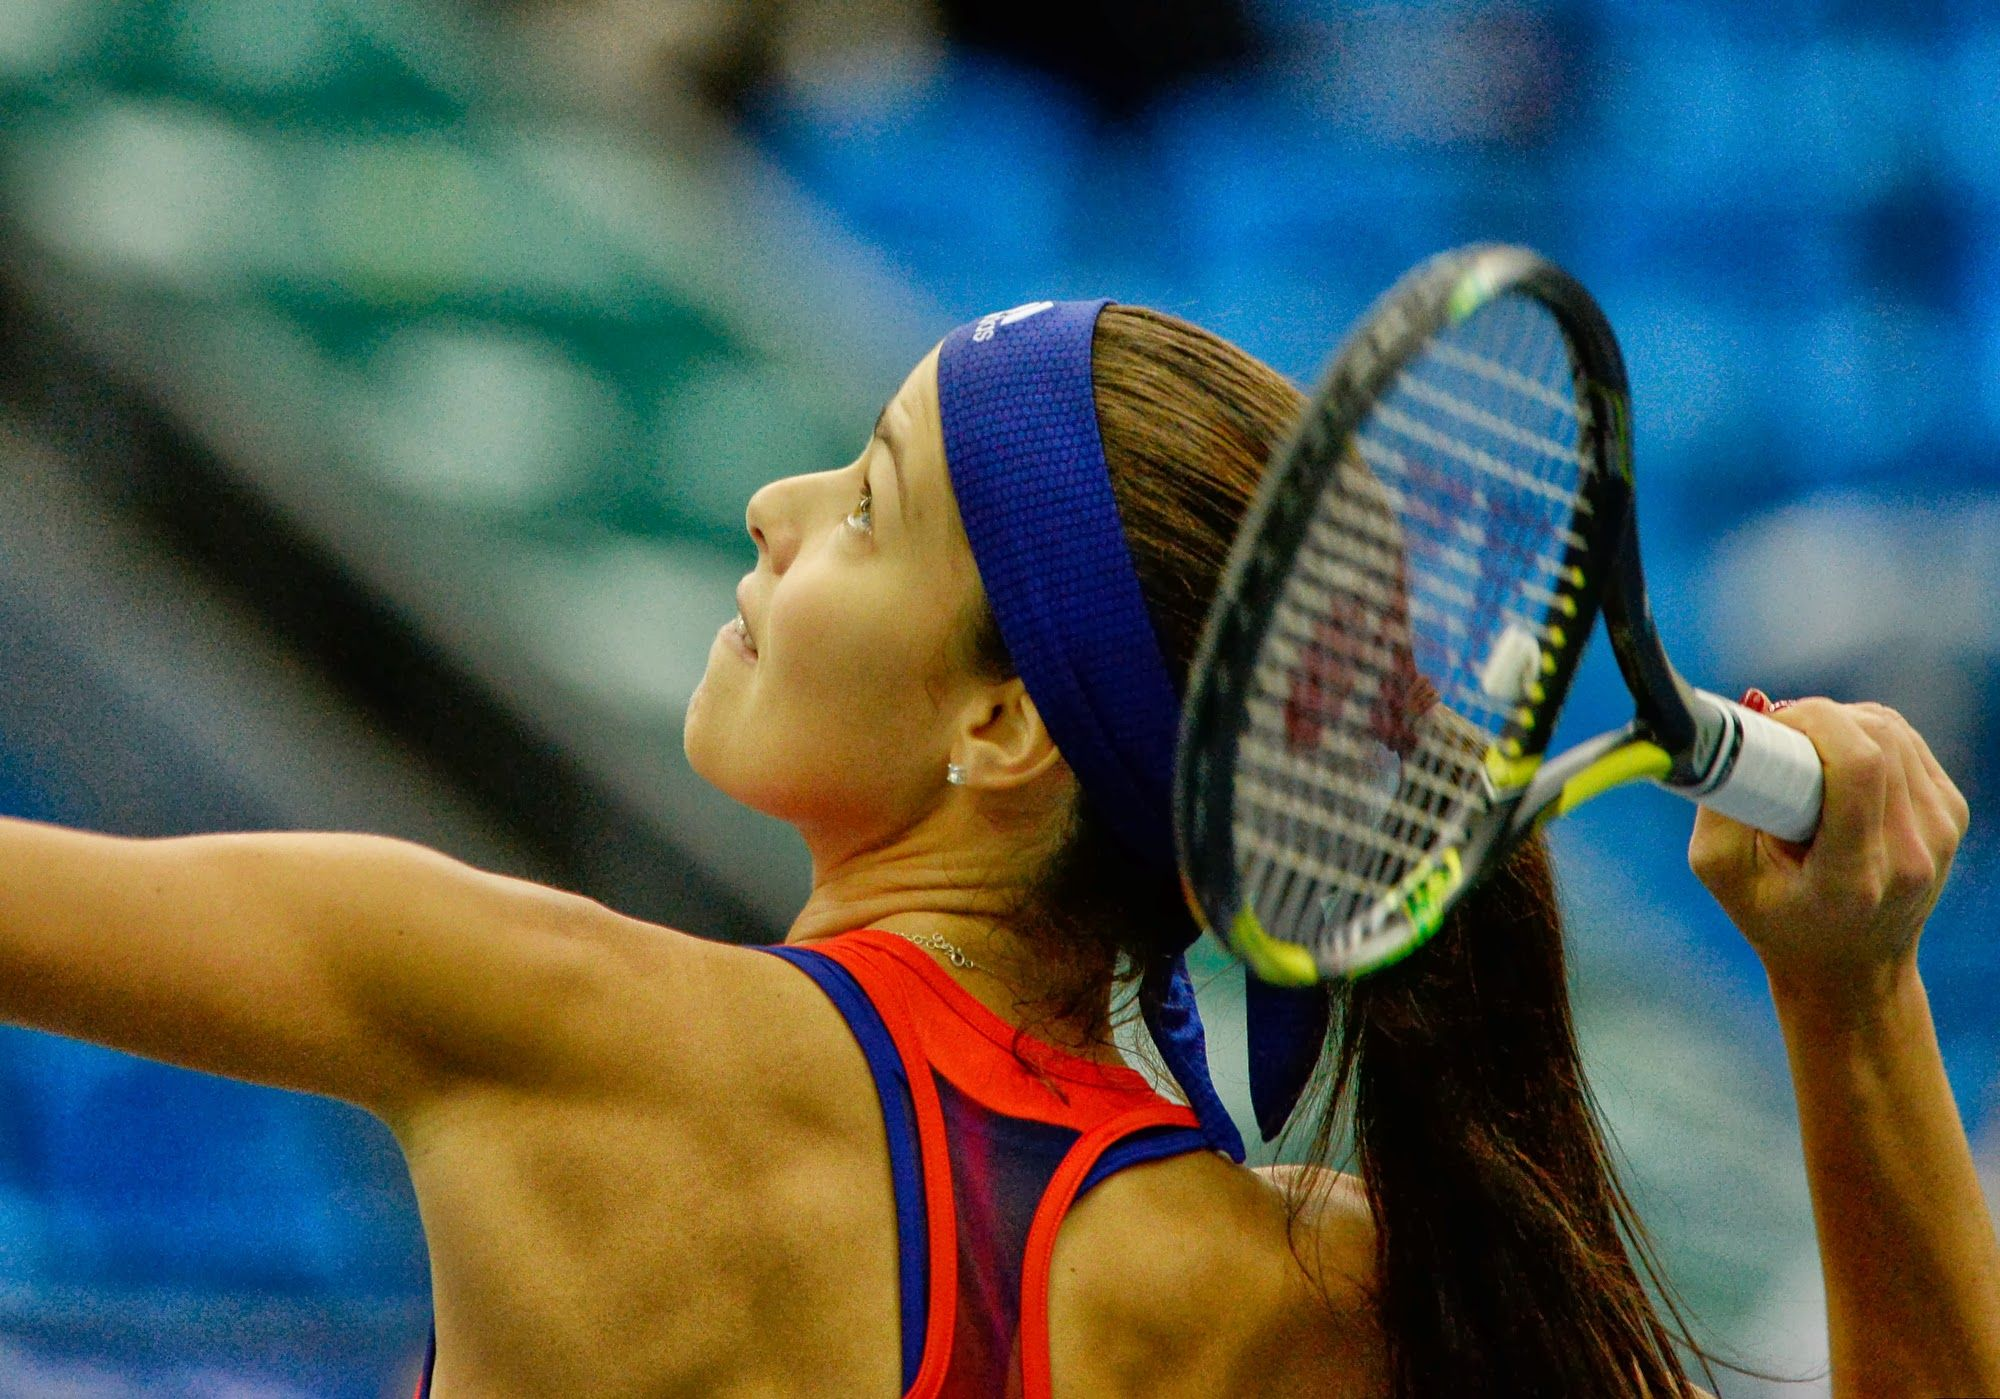 Ana Ivanovic in her match against Sam Stosur of Australia in Moscow, Oct. 18, 2013. #WTA #Ivanovic #Moscow